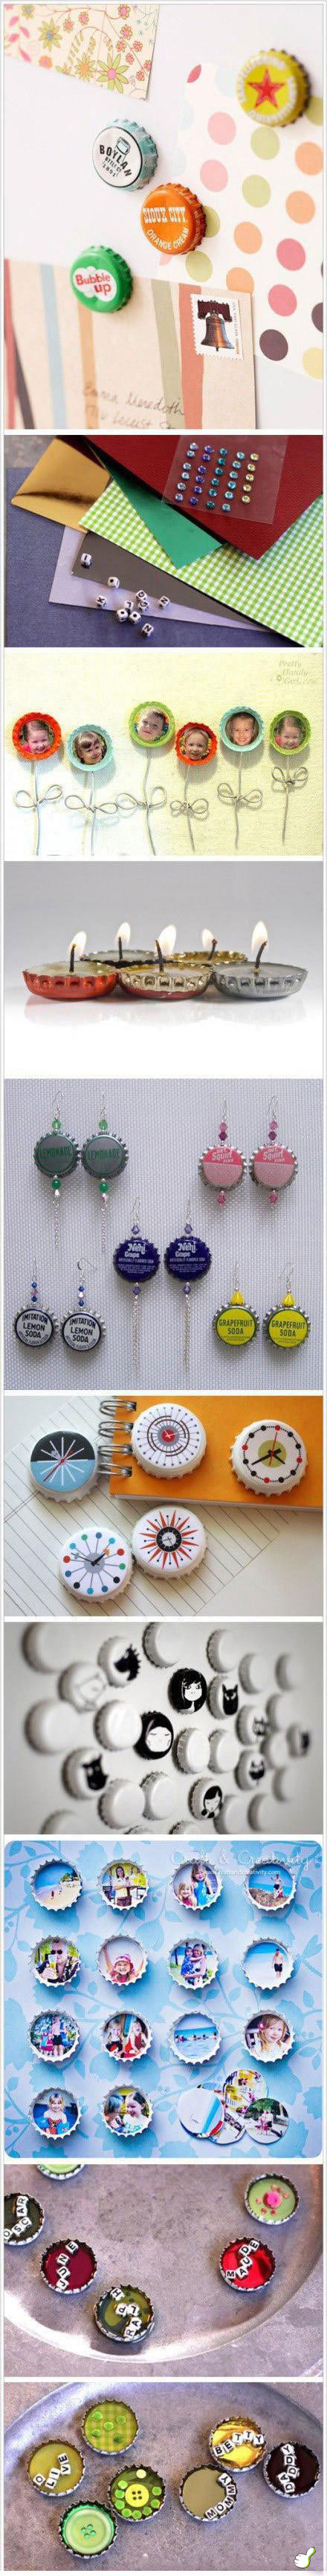 DIY Bottle Cap Ideas